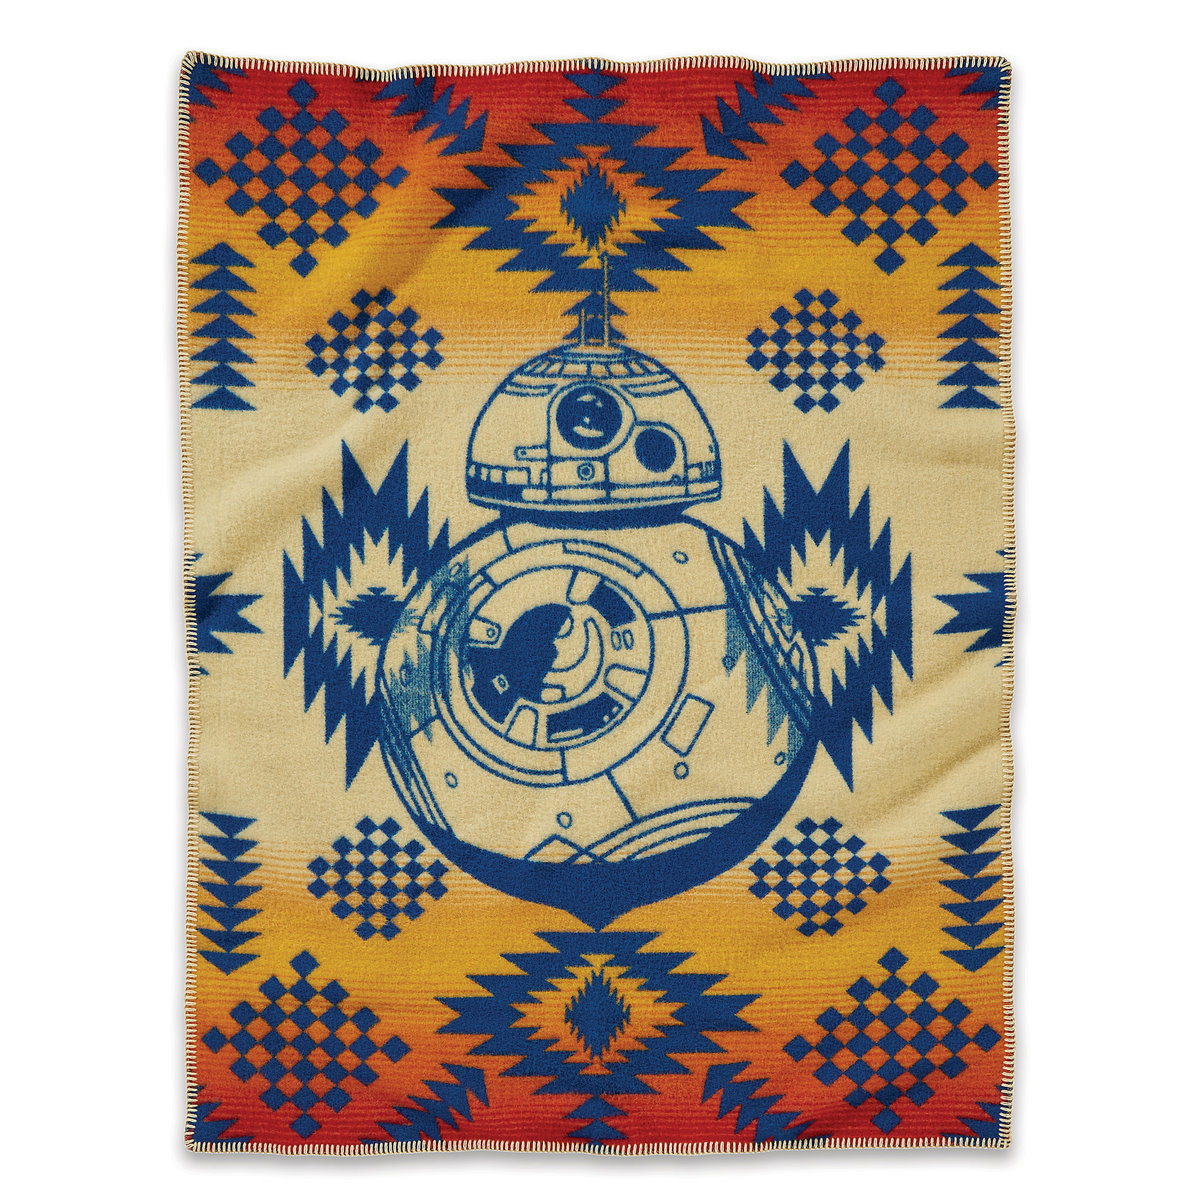 BB-8 Padawan Blanket by Pendleton - Star Wars